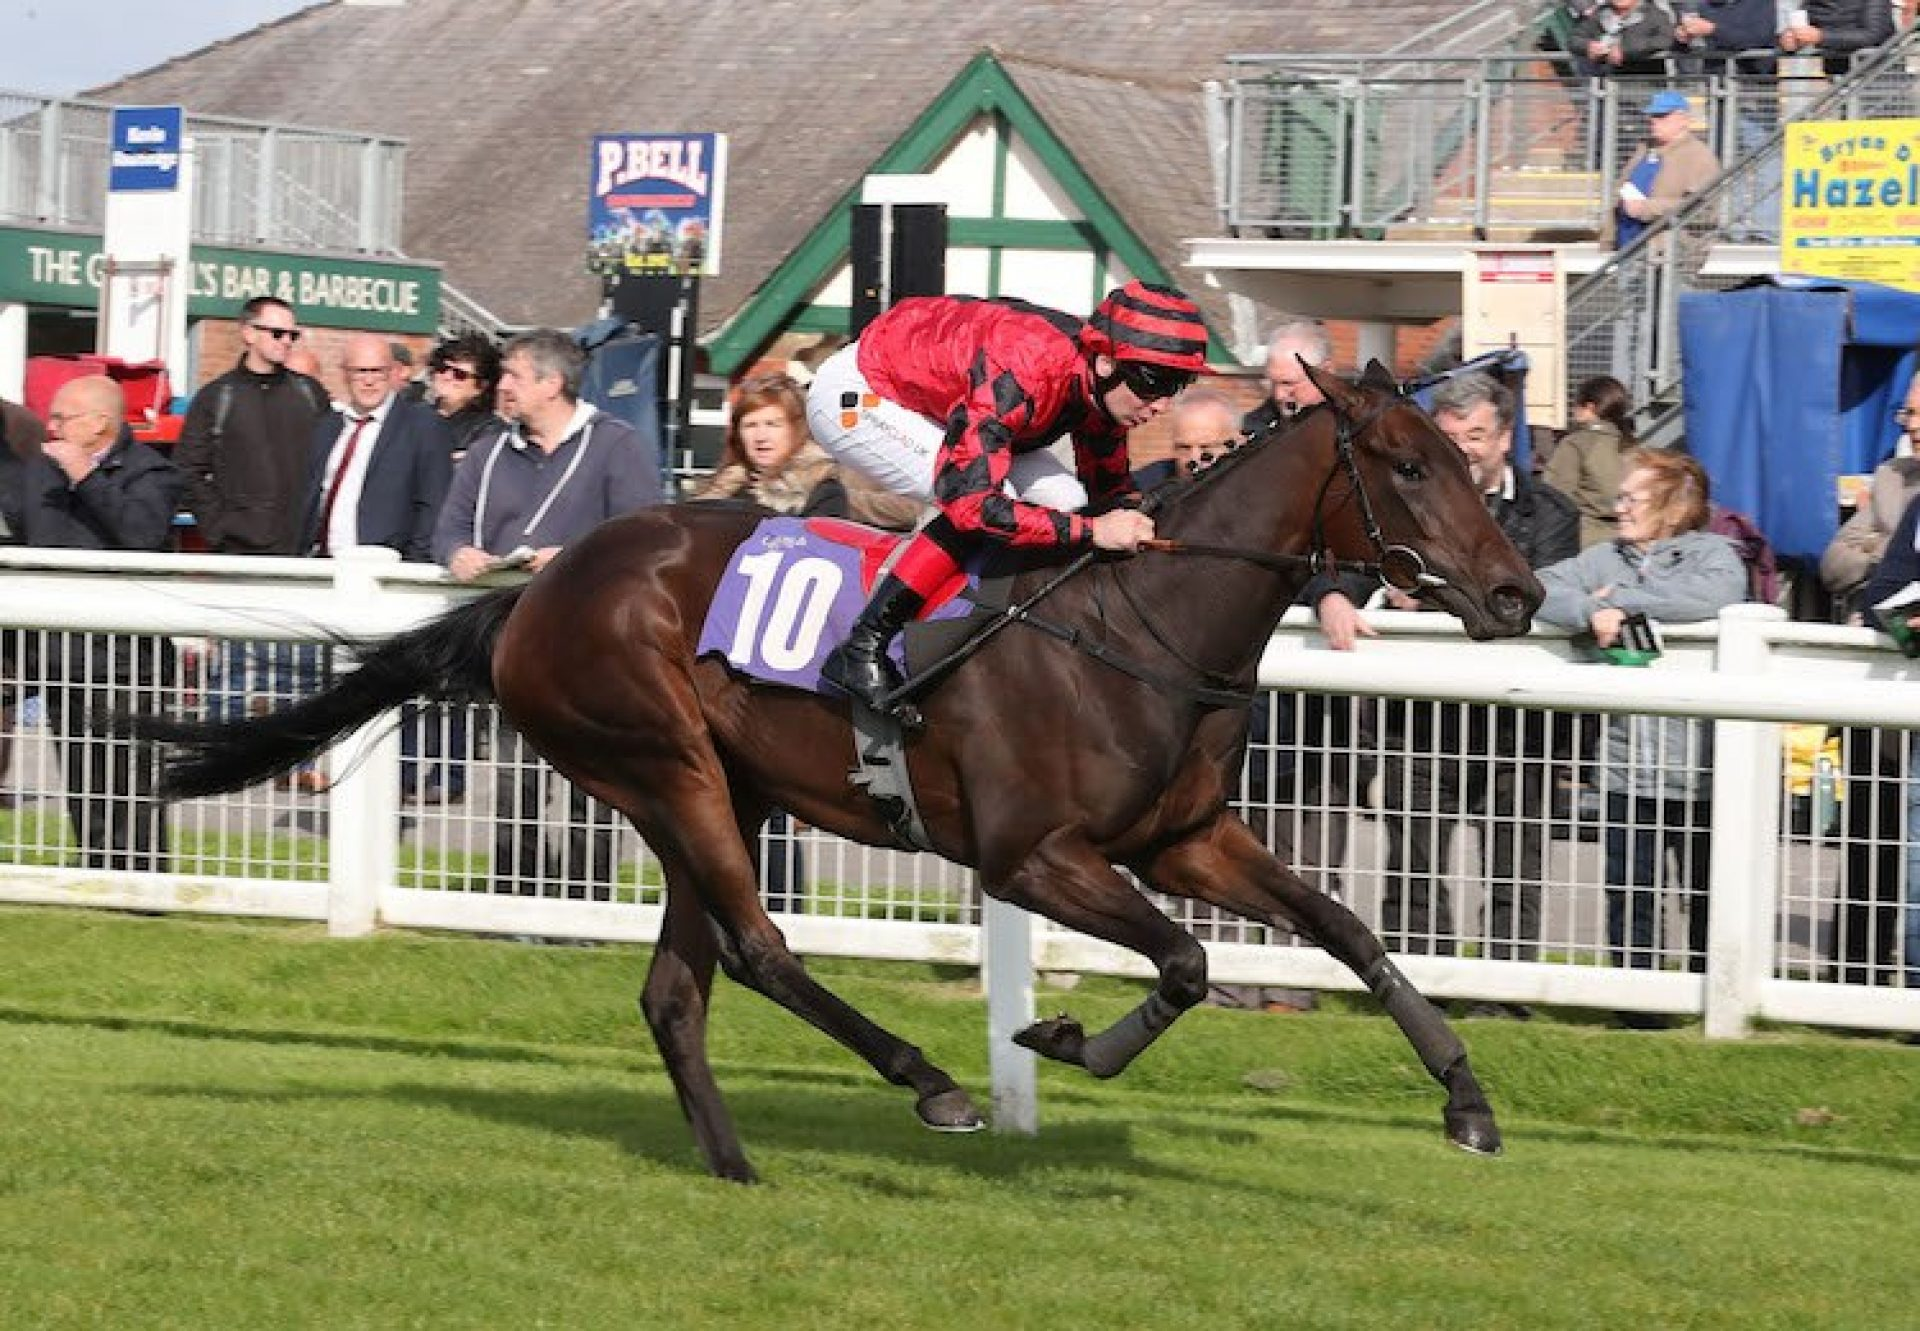 Summer Daydream (Footstepsinthesand) winning the Listed Racing UK Two Year Old Trophy at Redcar